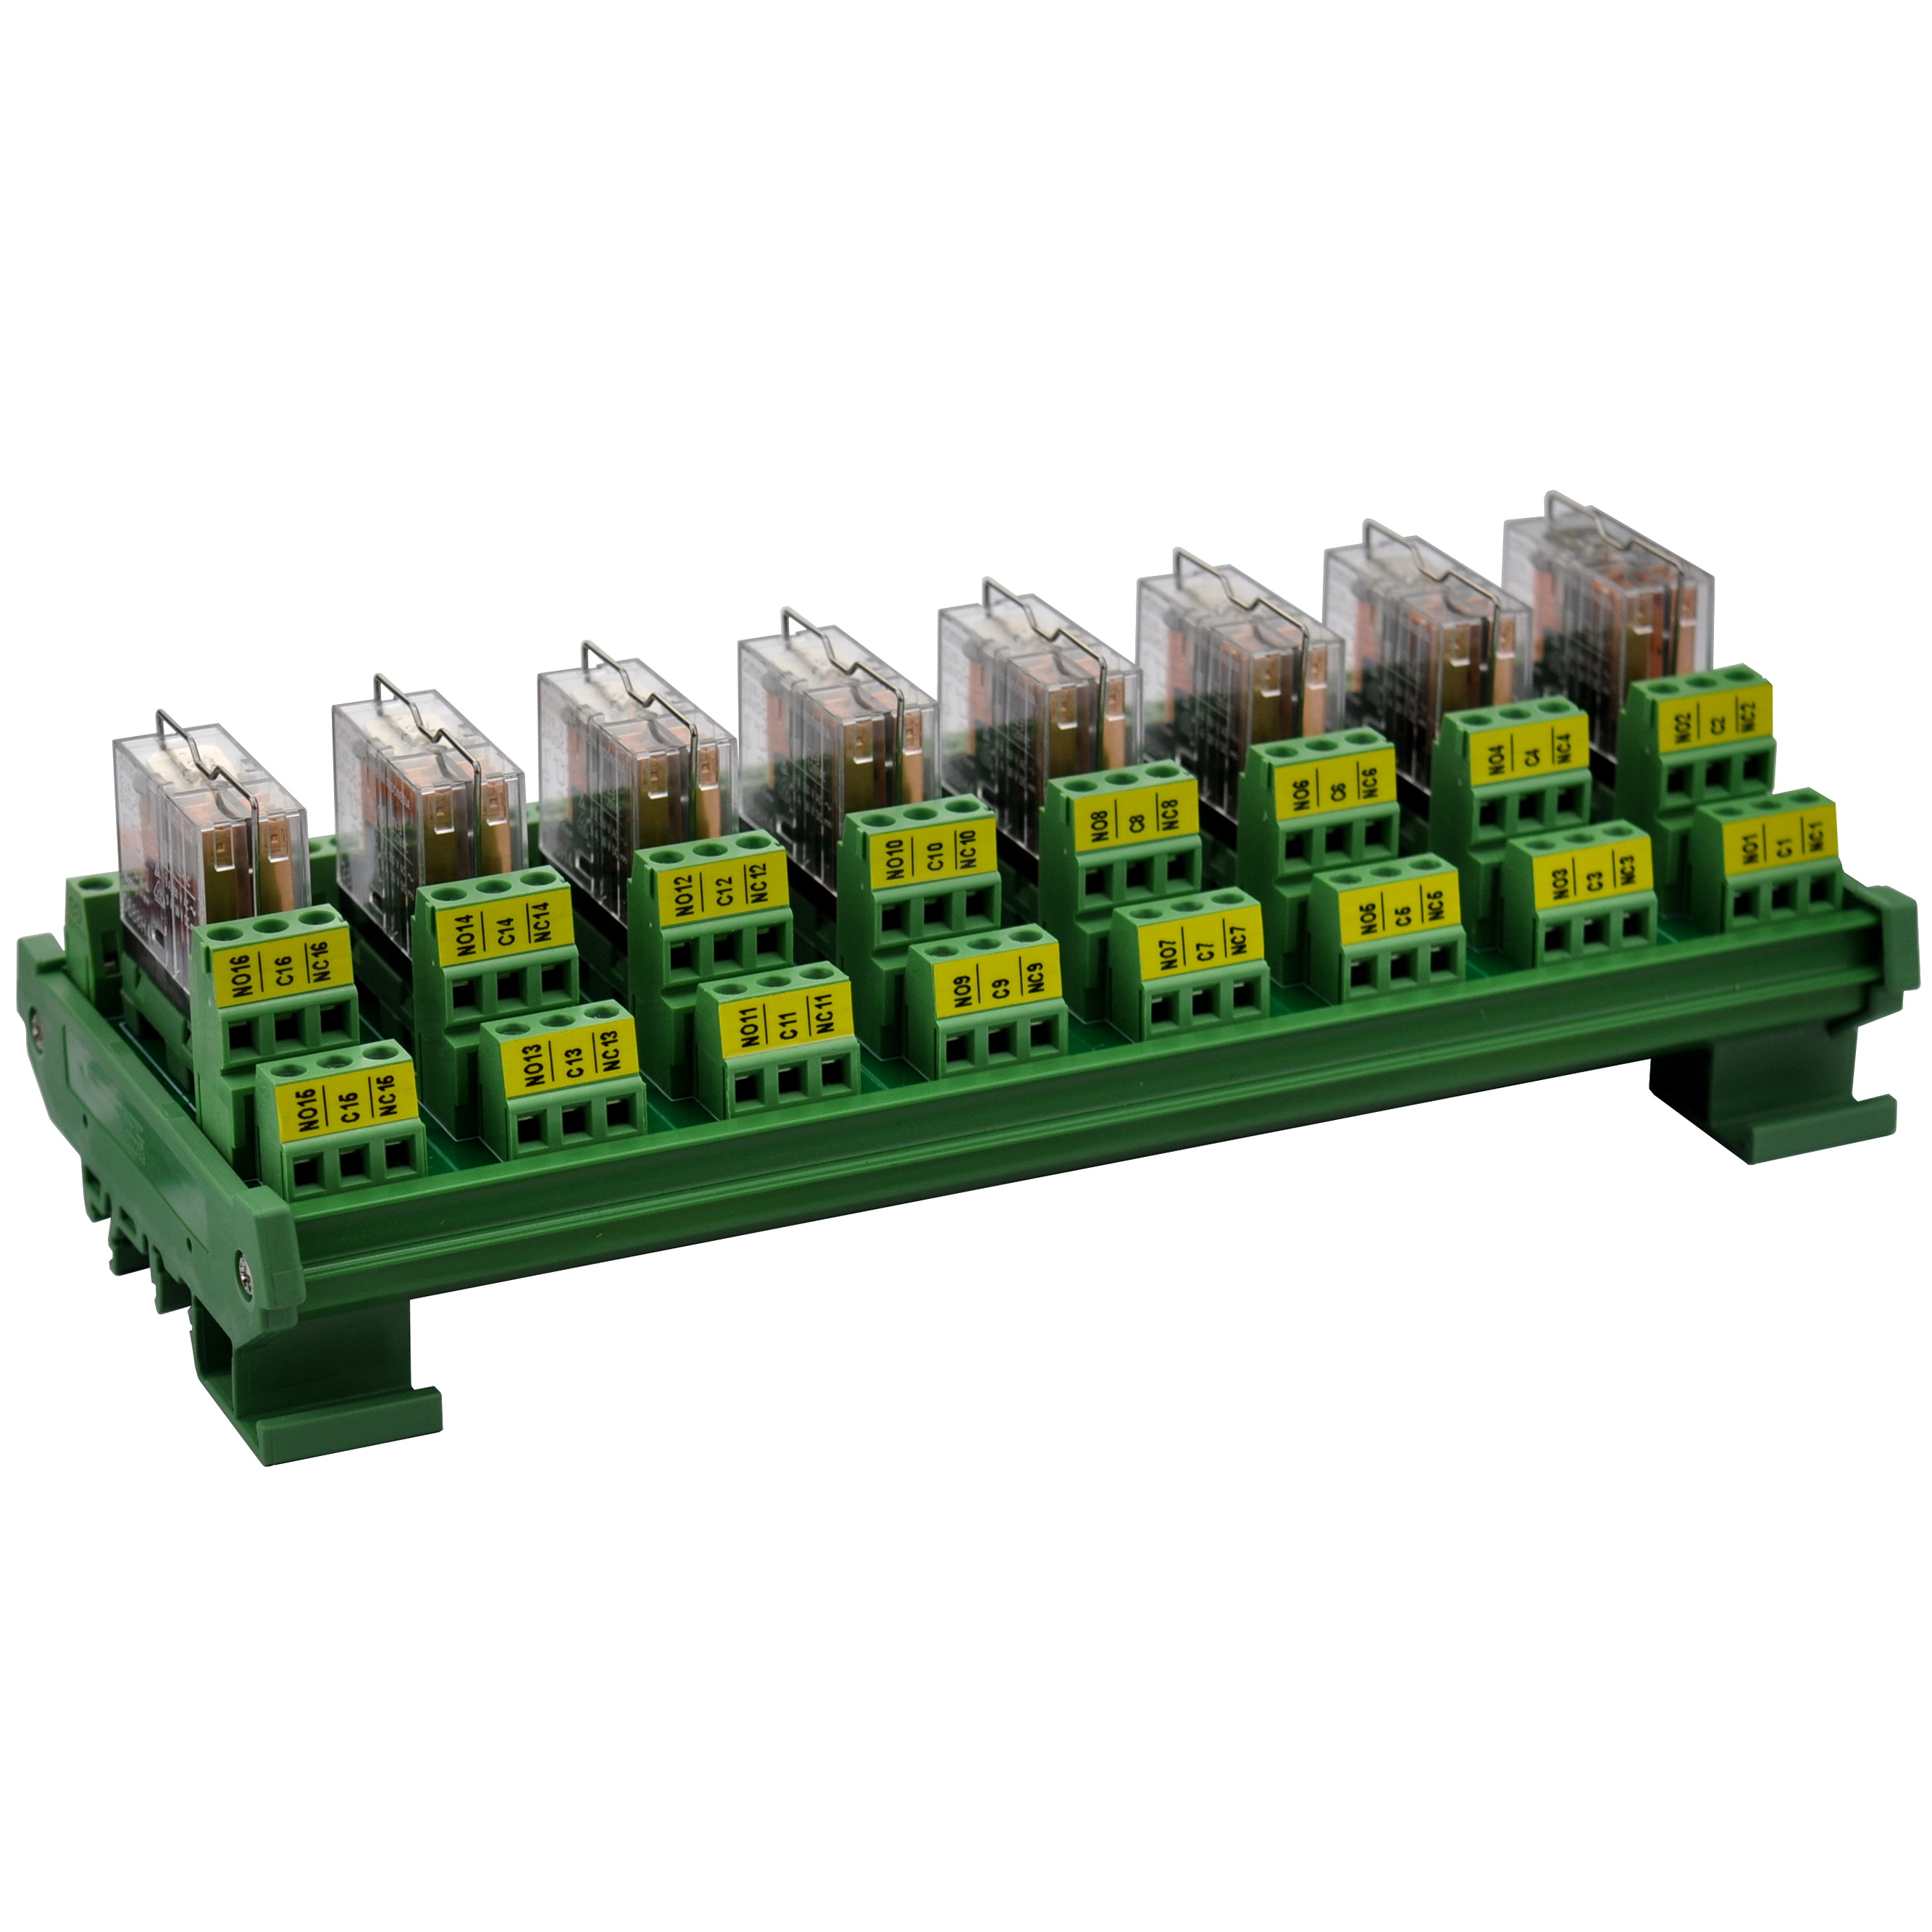 ELECTRONICS-SALON DIN Rail Mount AC/DC 5V Control 8 DPDT 5Amp Pluggable Power Relay Interface Module.